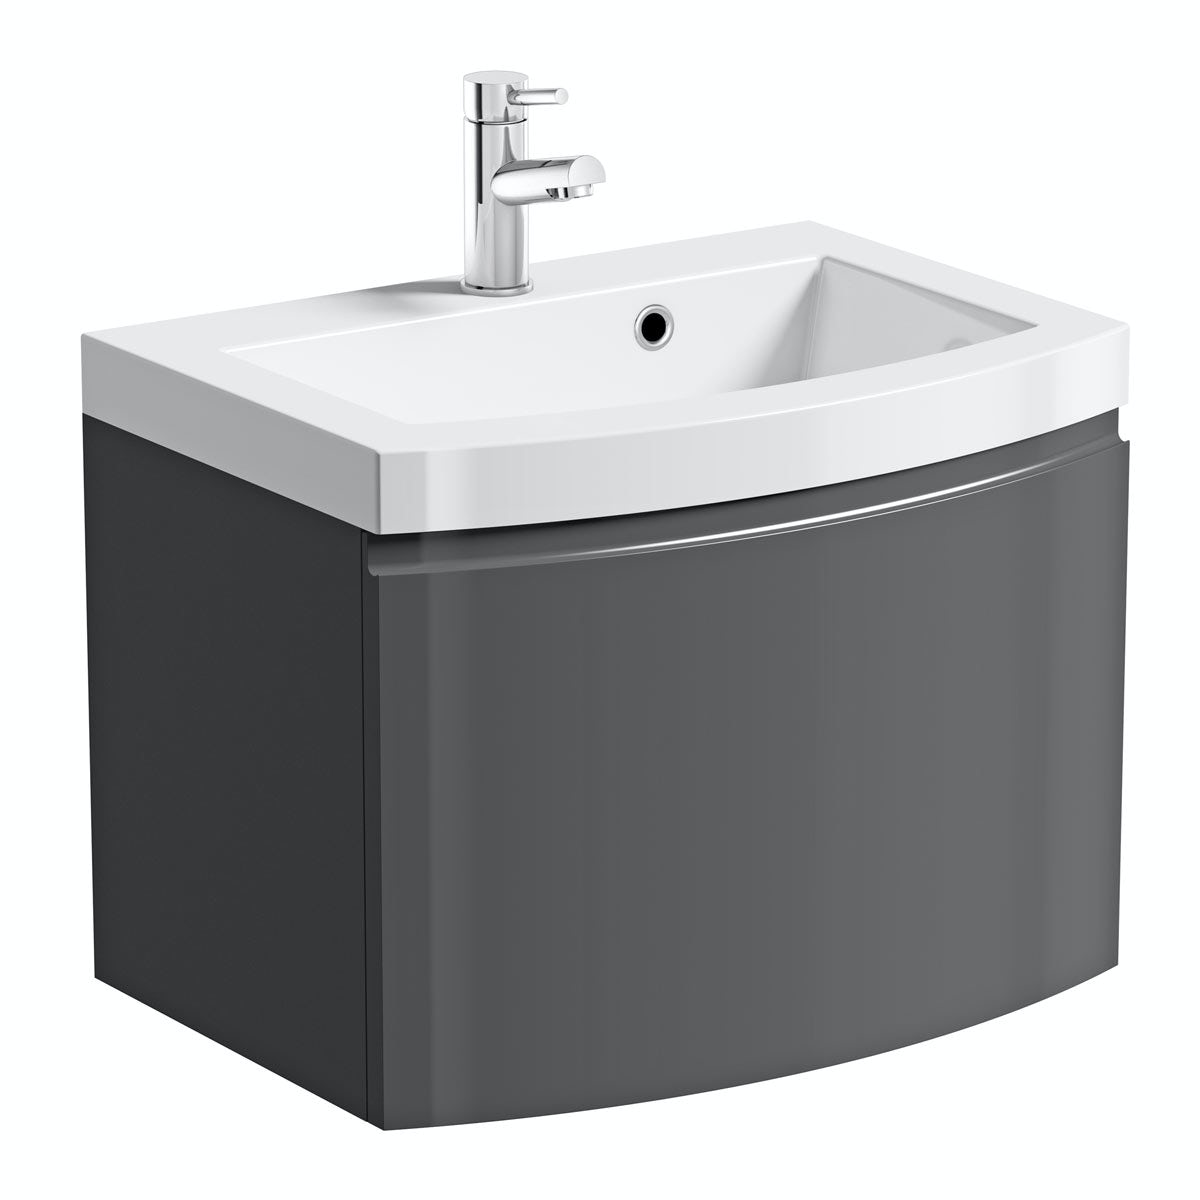 Curvaceous Slate 600 Wall Drawer Unit   Basin. Mode Curvaceous slate wall hung vanity unit with basin 600mm